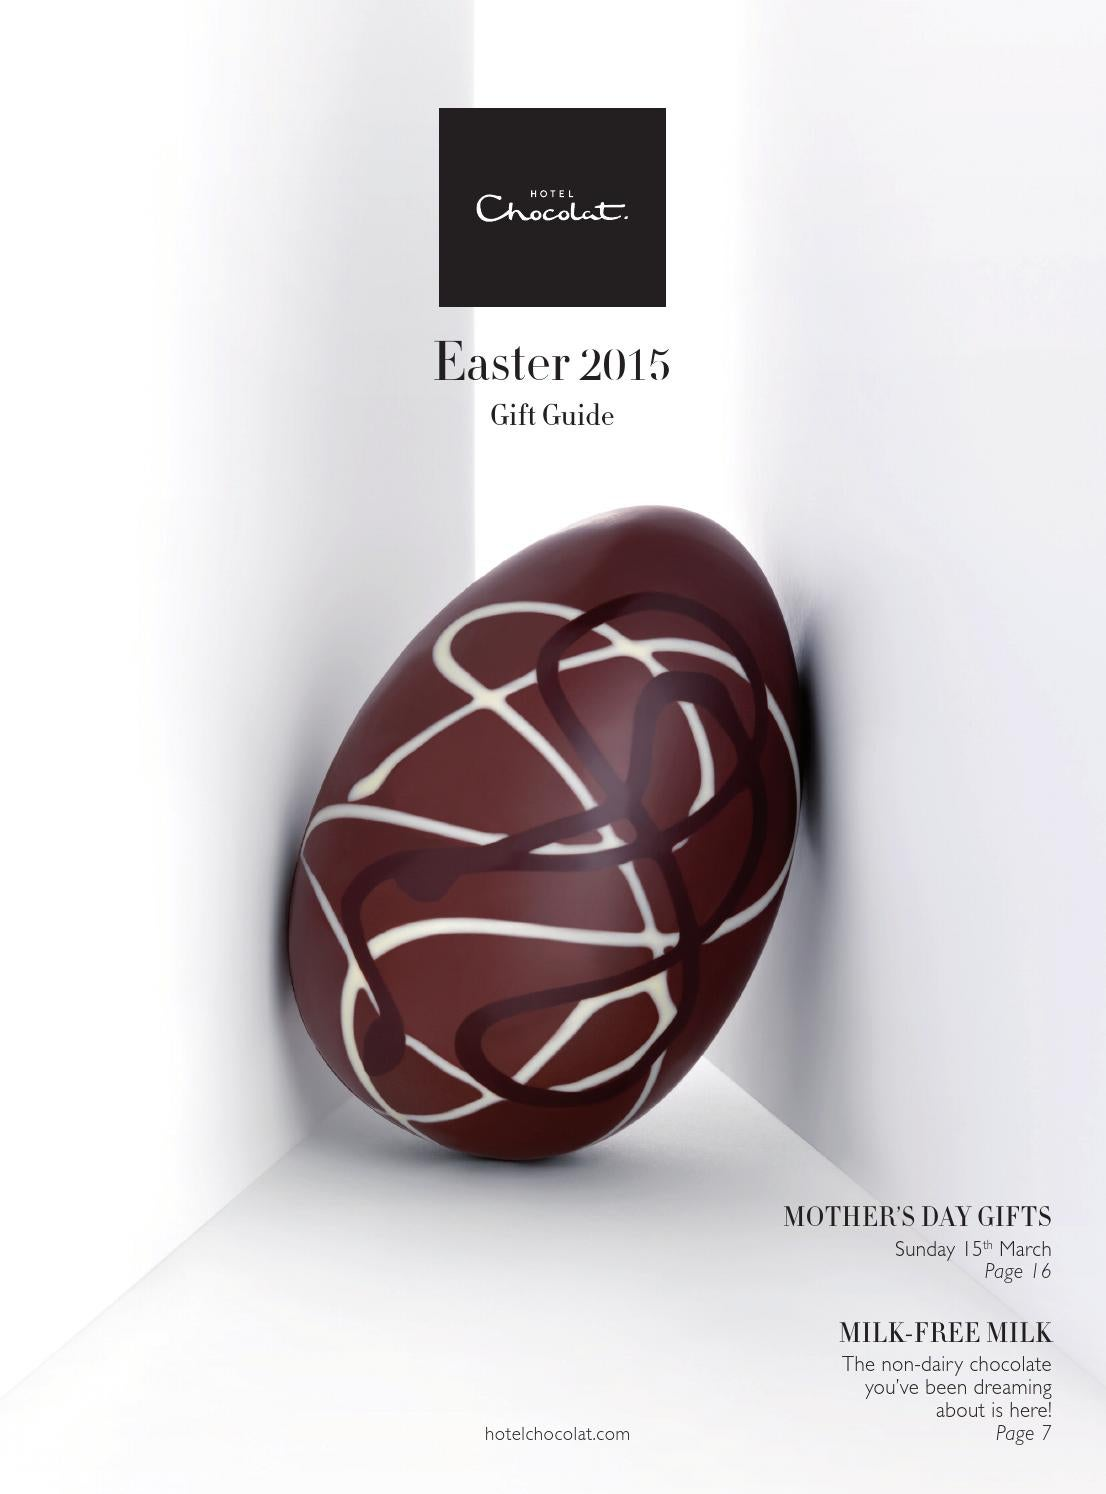 Hotel chocolat easter 2015 gift guide by hotel chocolat issuu negle Gallery